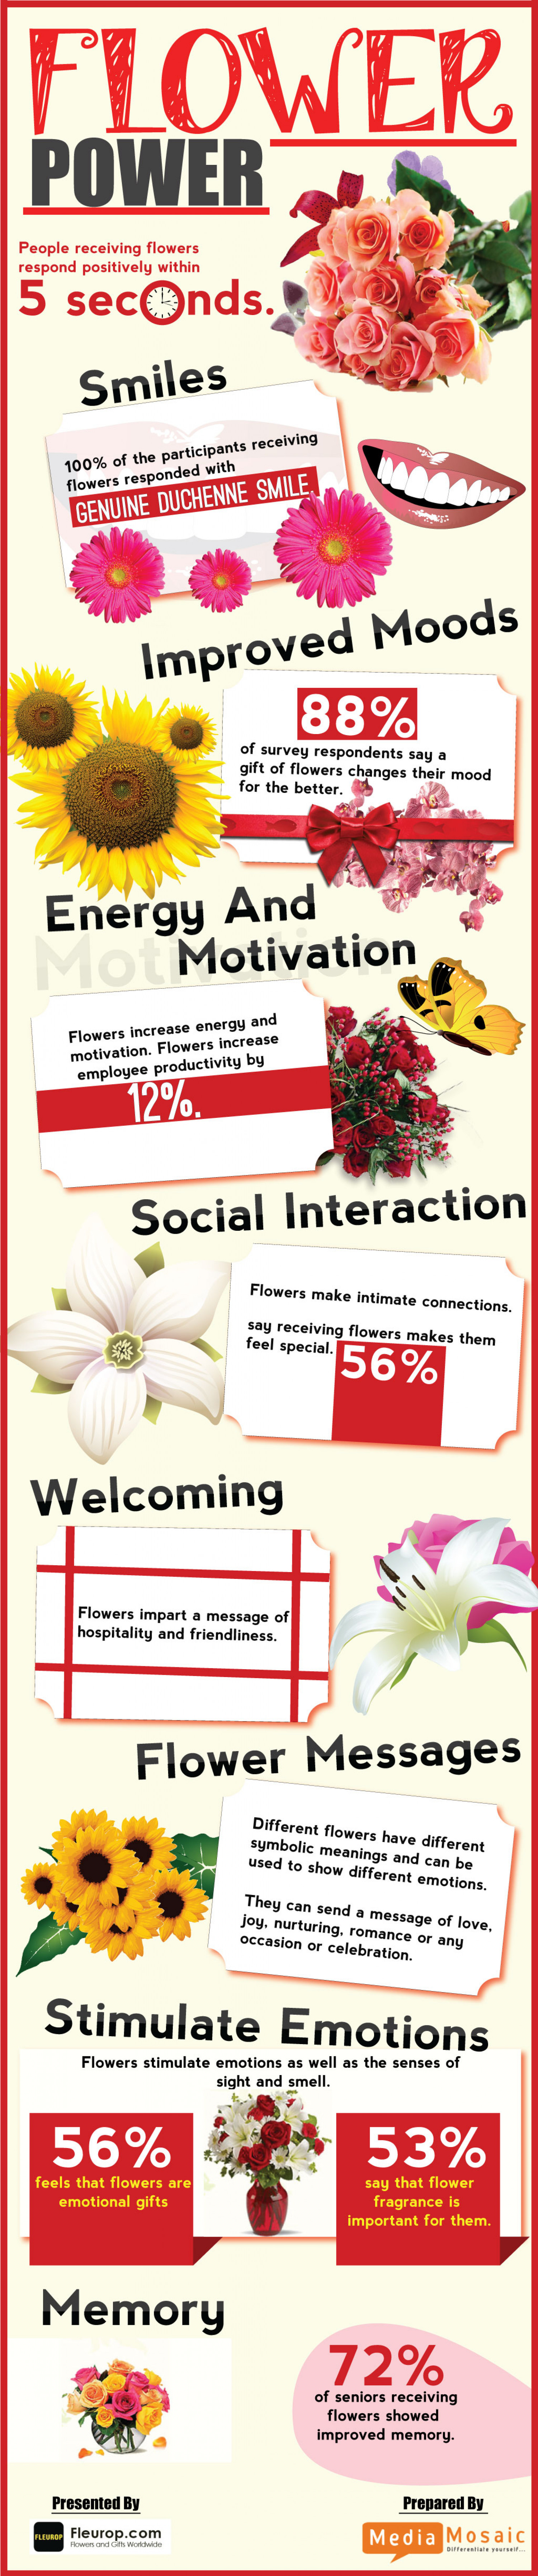 Flower Power Infographic